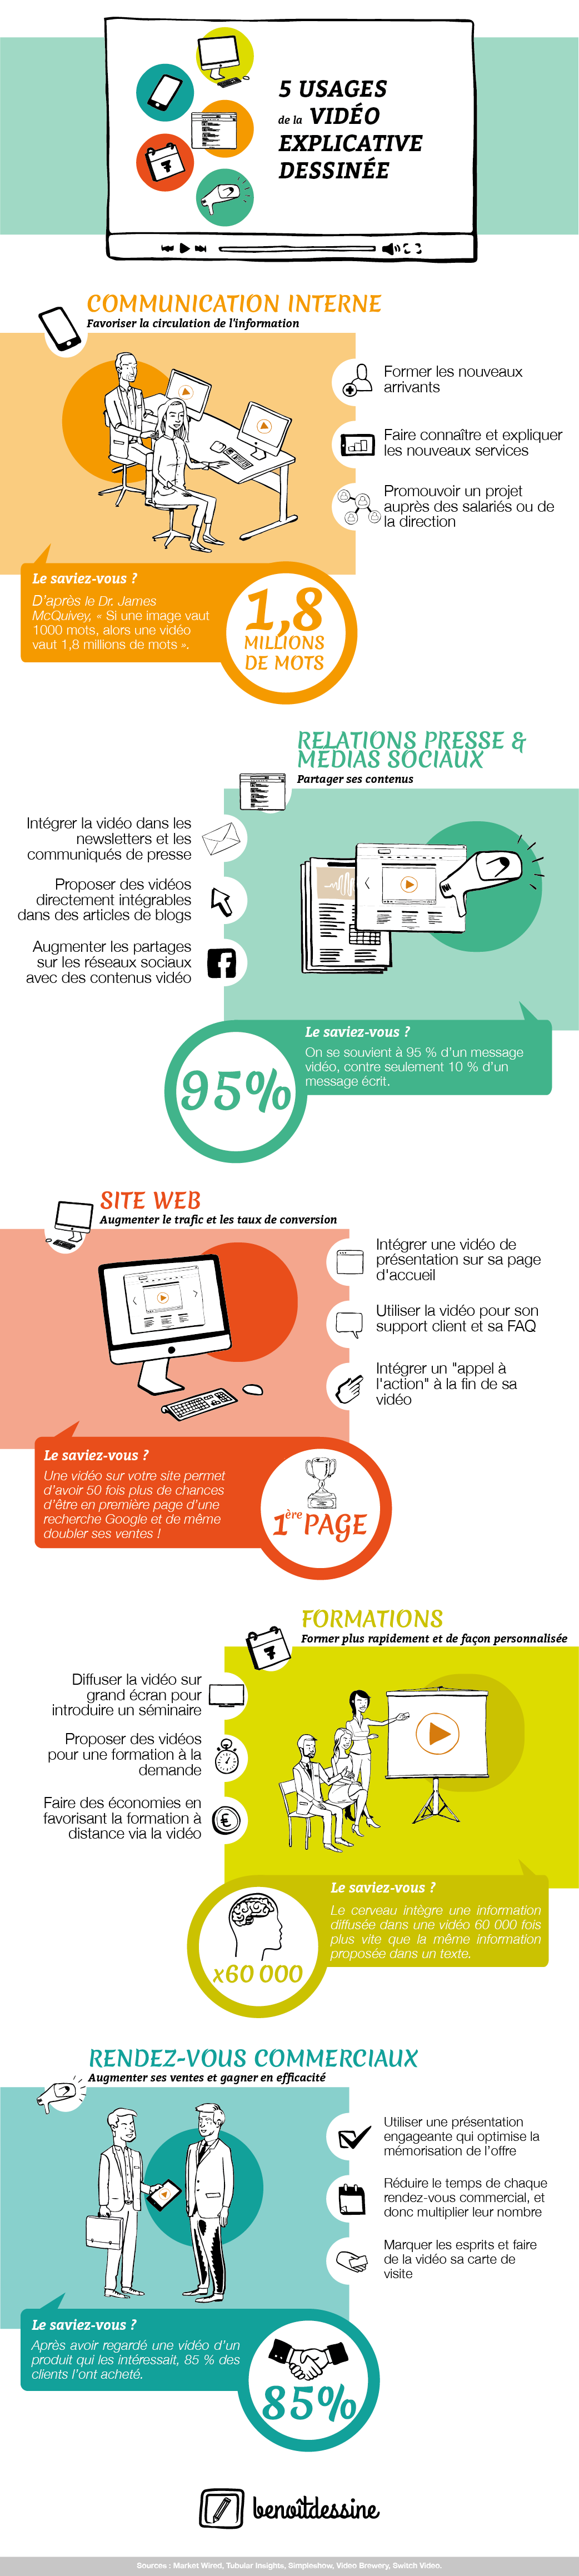 infographie_benoitdessine_cas-d-usage_videos_dessinees_explicatives_web_formations_communication_RP_125ppp-01